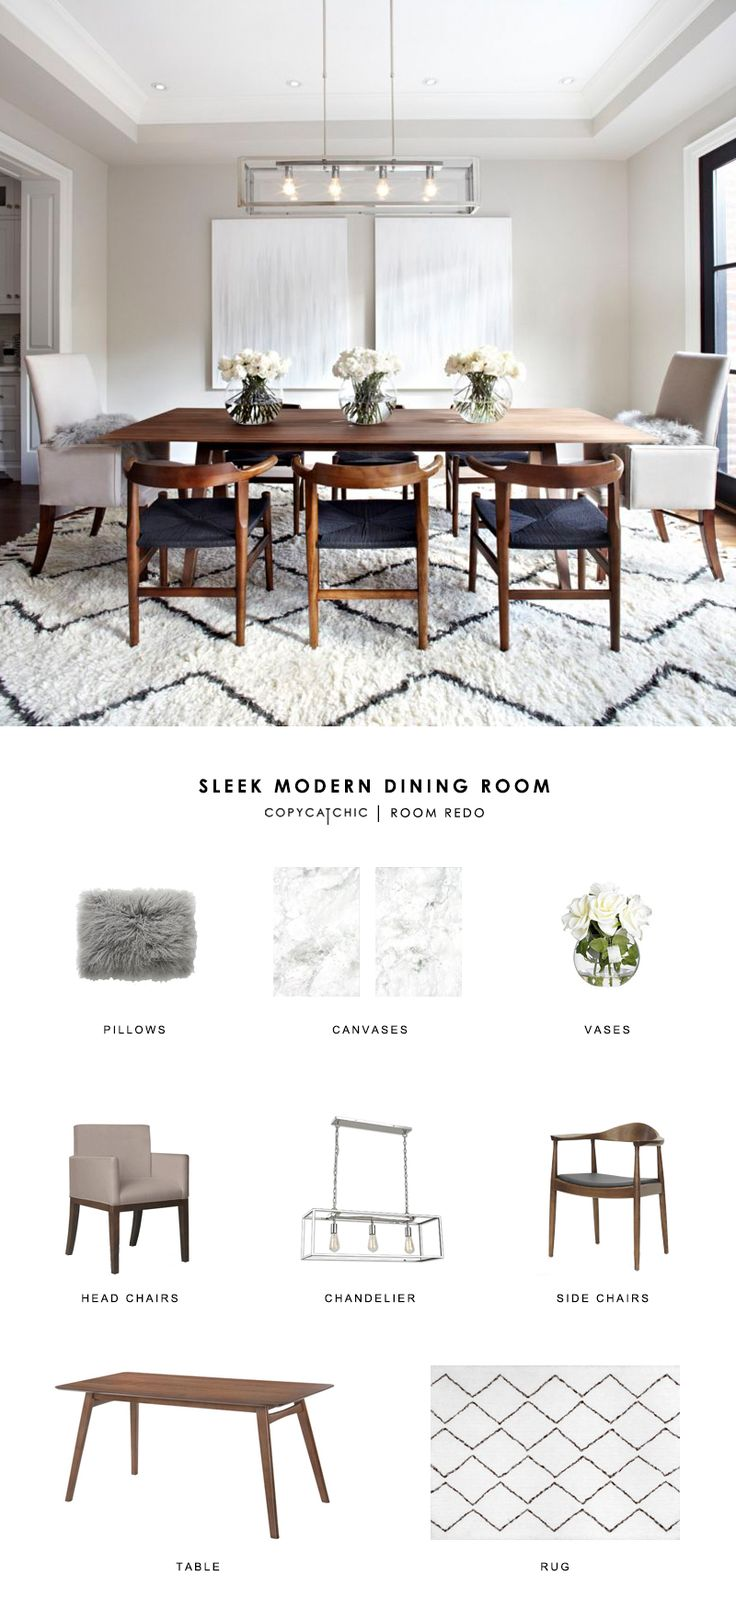 Transitional dining room - Copy Cat Chic Room Redo Sleek Modern Dining Room Transitional